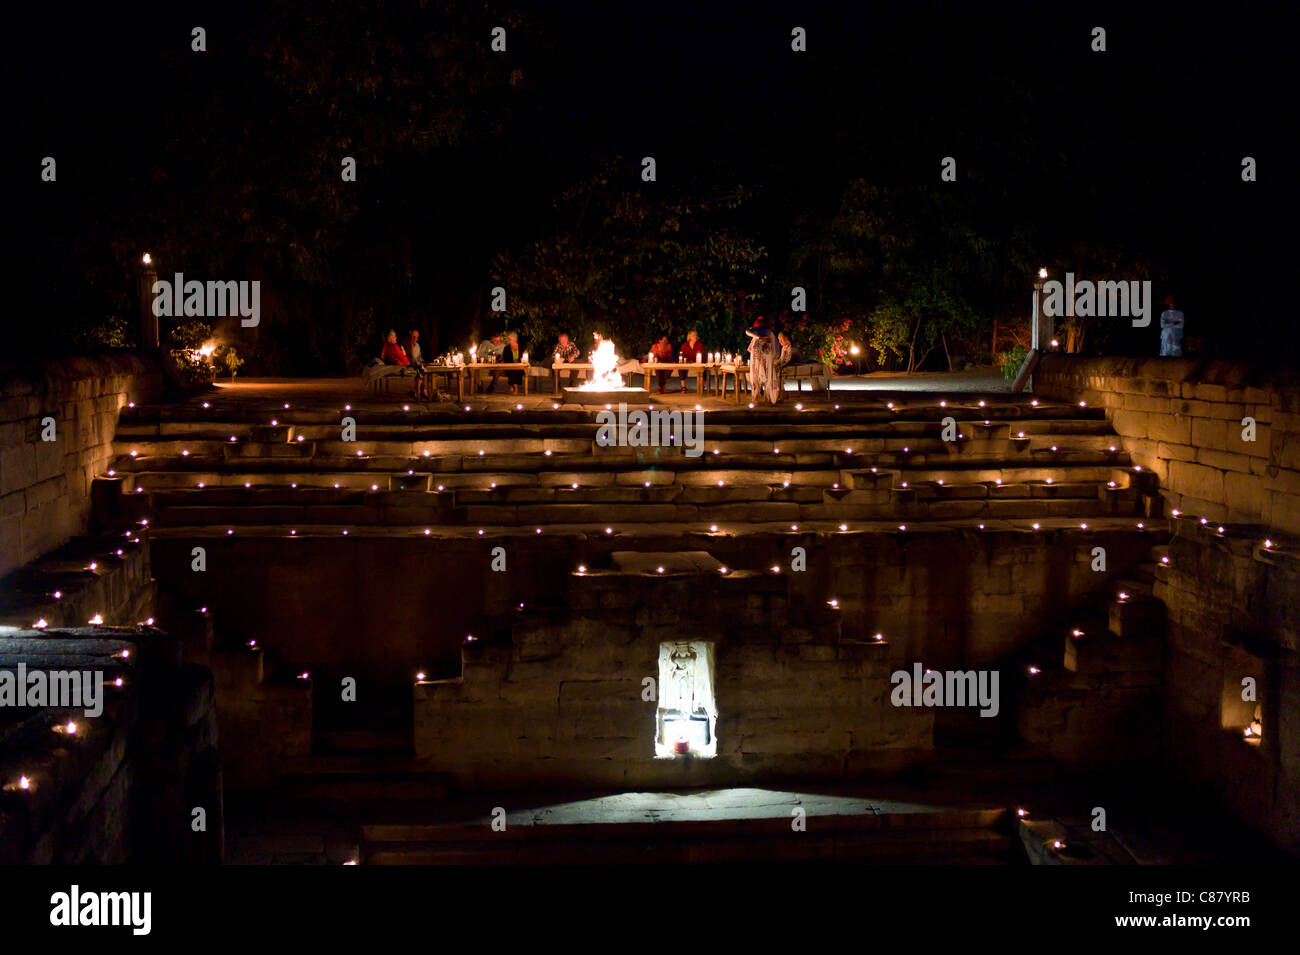 Guests at candlelight dinner at The Stepwell, Rawla Narlai hotel in Rajasthan, India - Stock Image